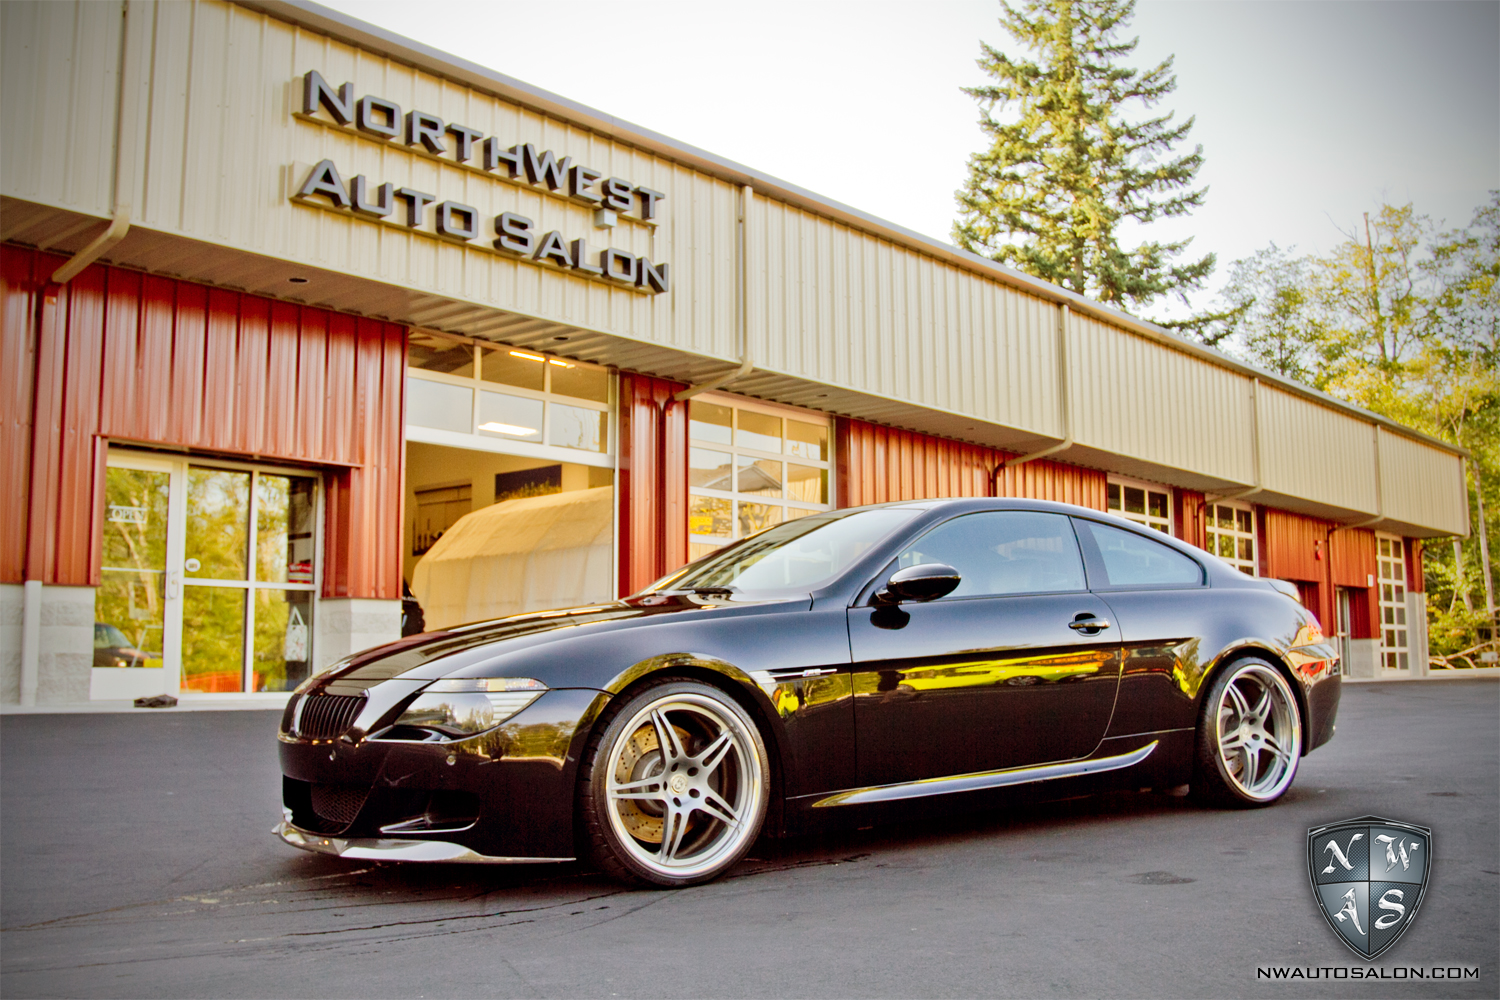 Alderwood Auto Detailing NorthWest Auto Salon BMW M6 Exterior